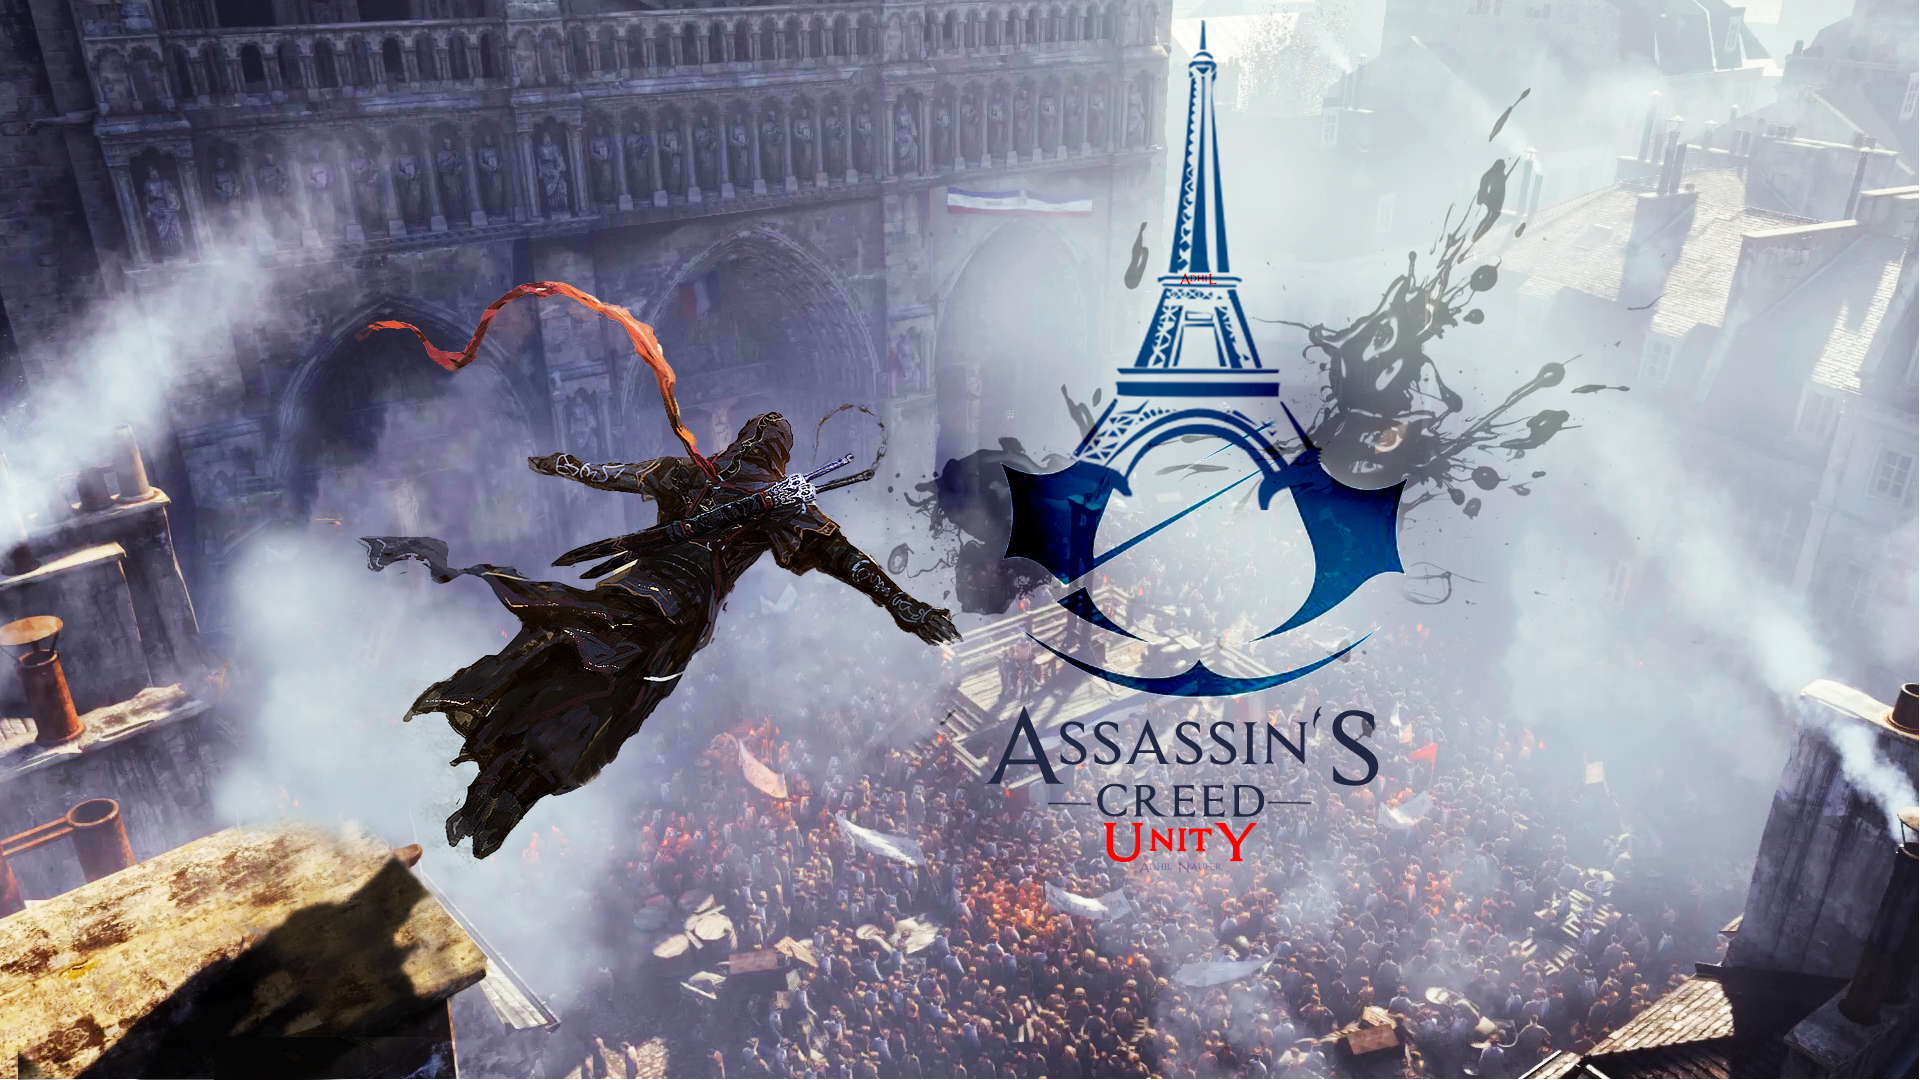 Photo of Directorul lui Assassin's Creed își cere iertare